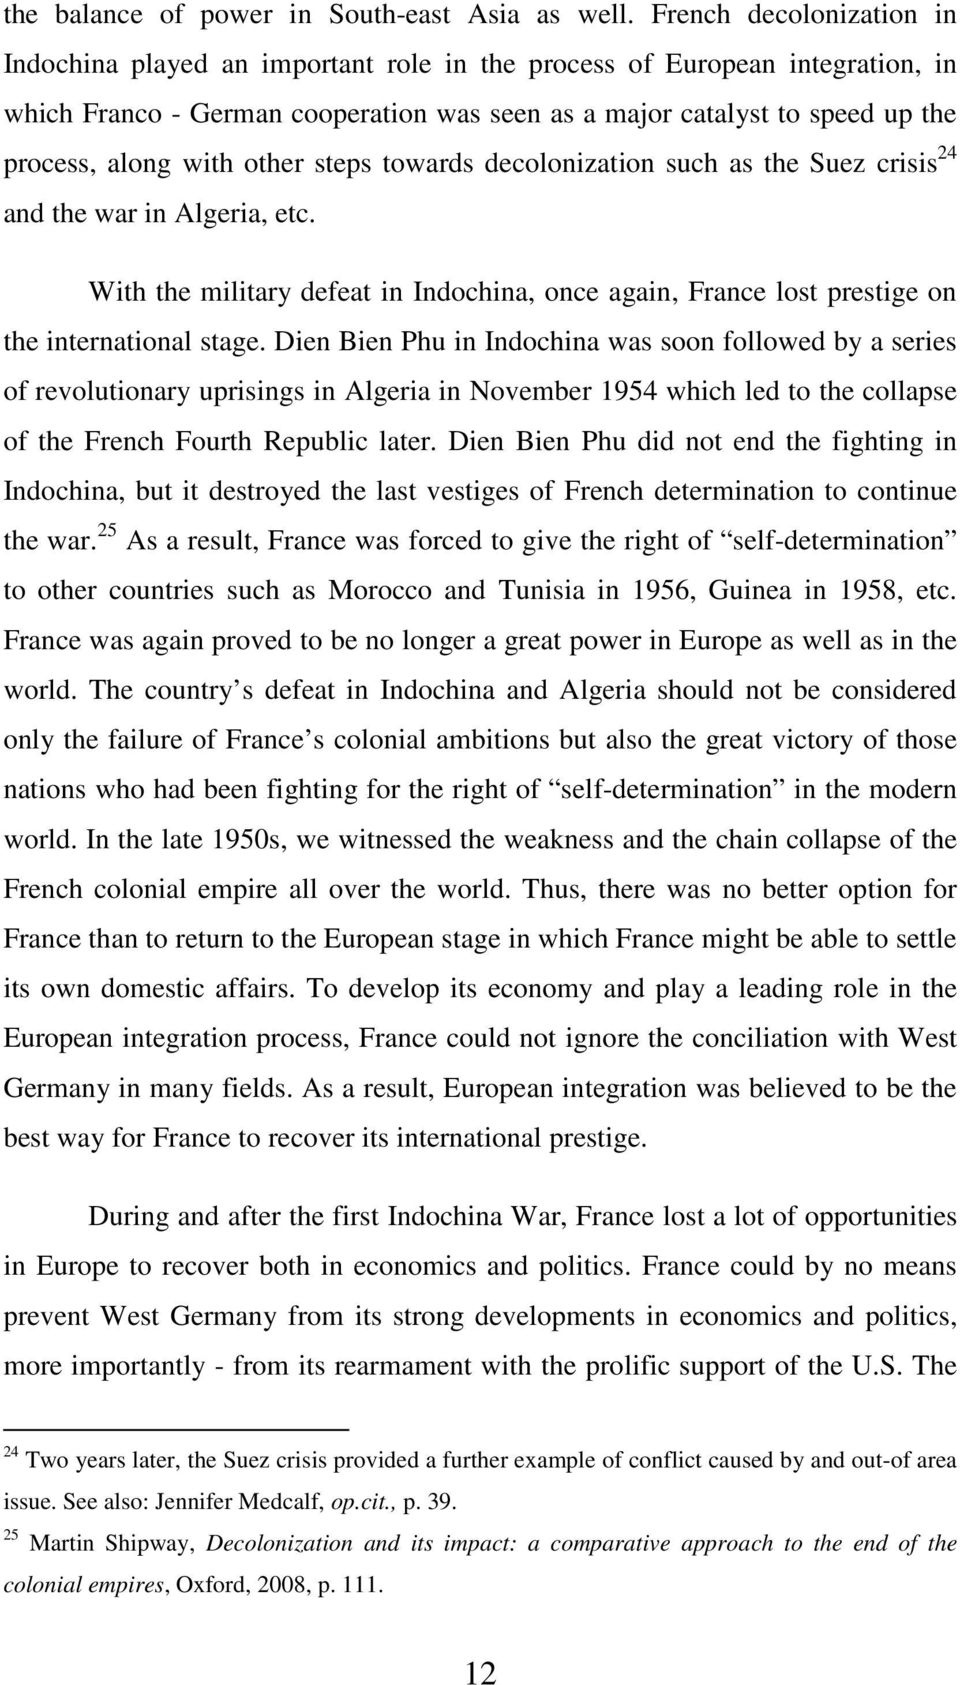 with other steps towards decolonization such as the Suez crisis 24 and the war in Algeria, etc. With the military defeat in Indochina, once again, France lost prestige on the international stage.